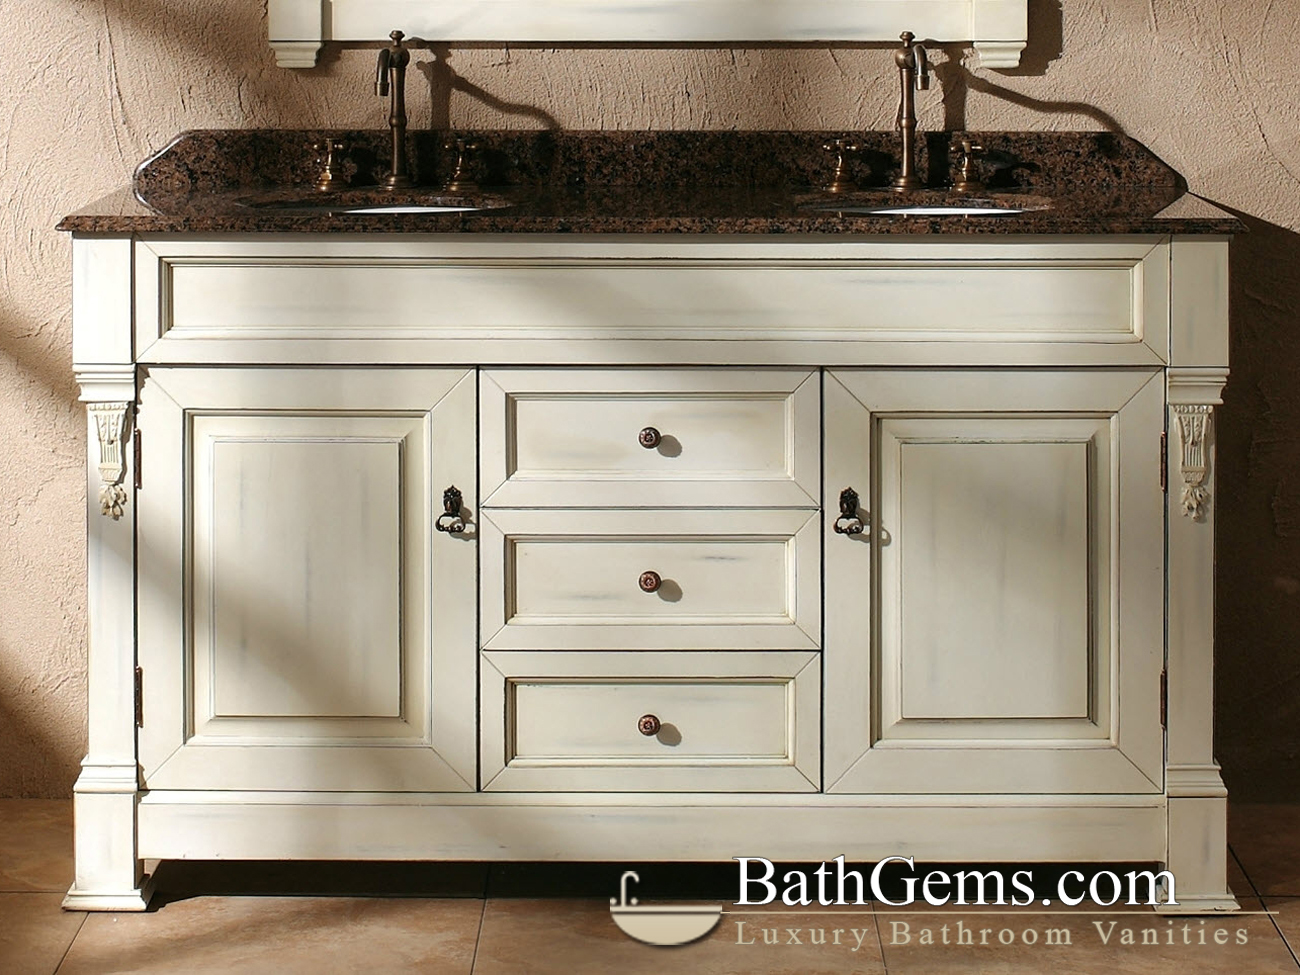 60 peruga double sink vanity antique white for Antique white double bathroom vanity